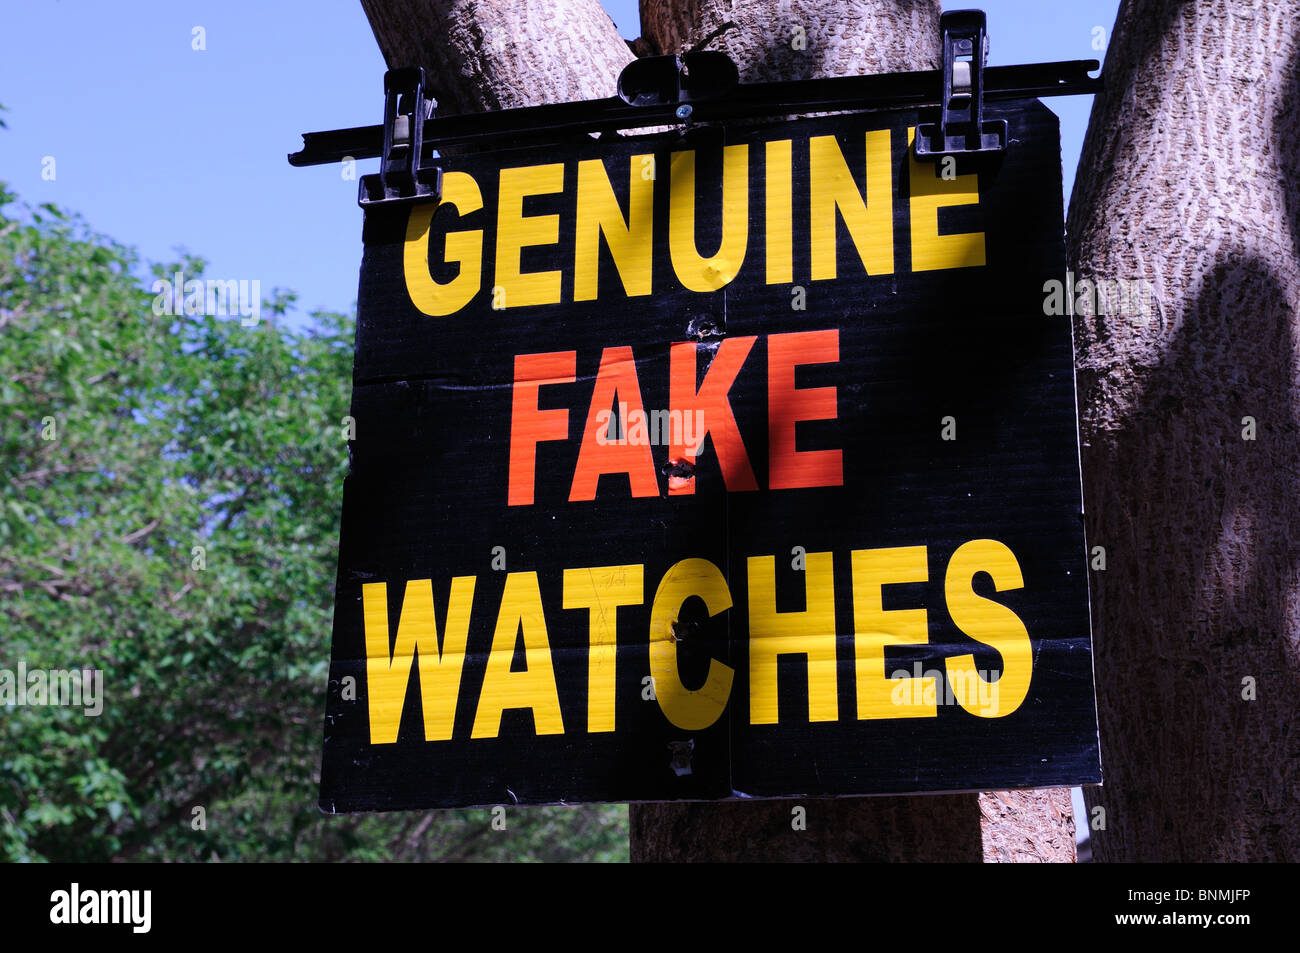 Genuine Fake Watches sign in a Turkish market Turkey Asia Minor - Stock Image